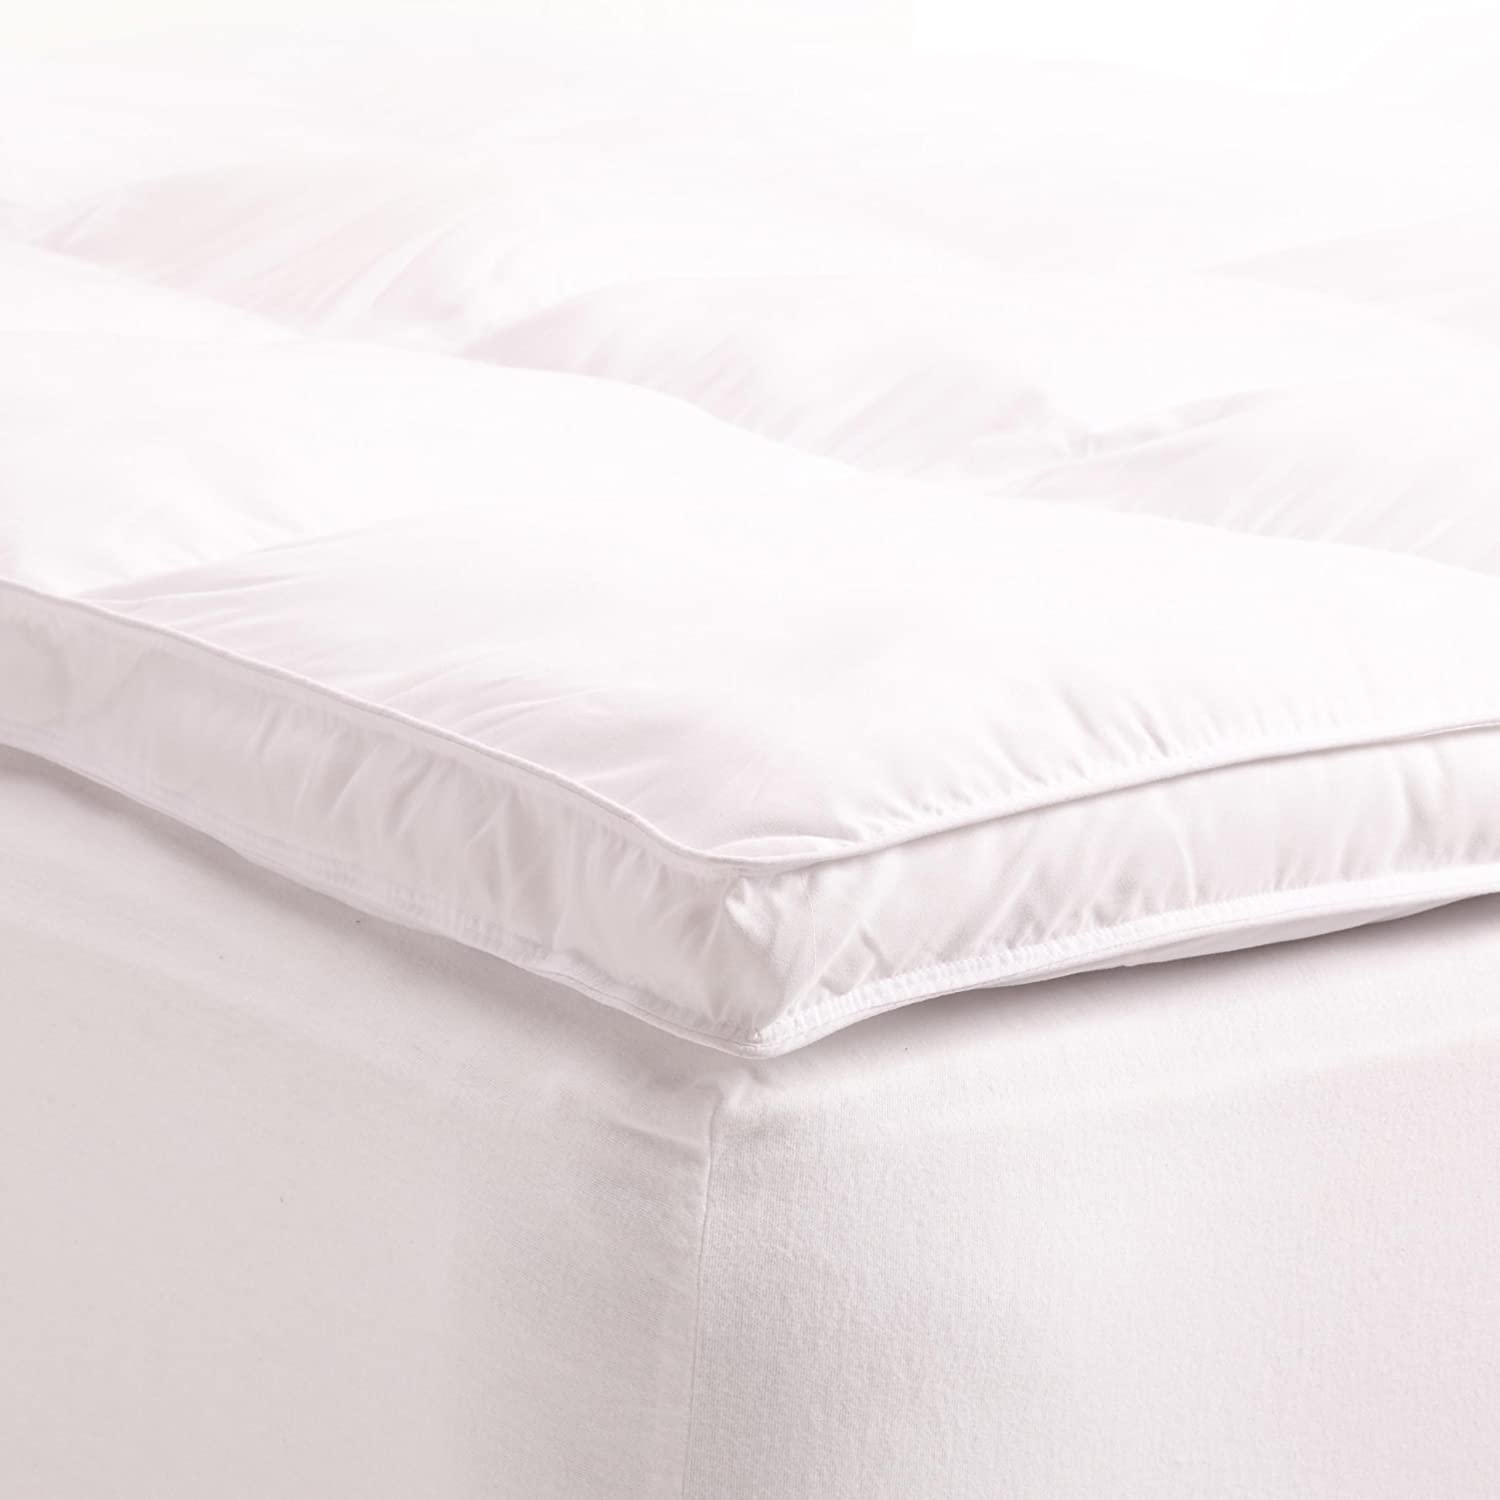 beds from utopia buy deluxe divan now topper bed mattress top only a pillow online